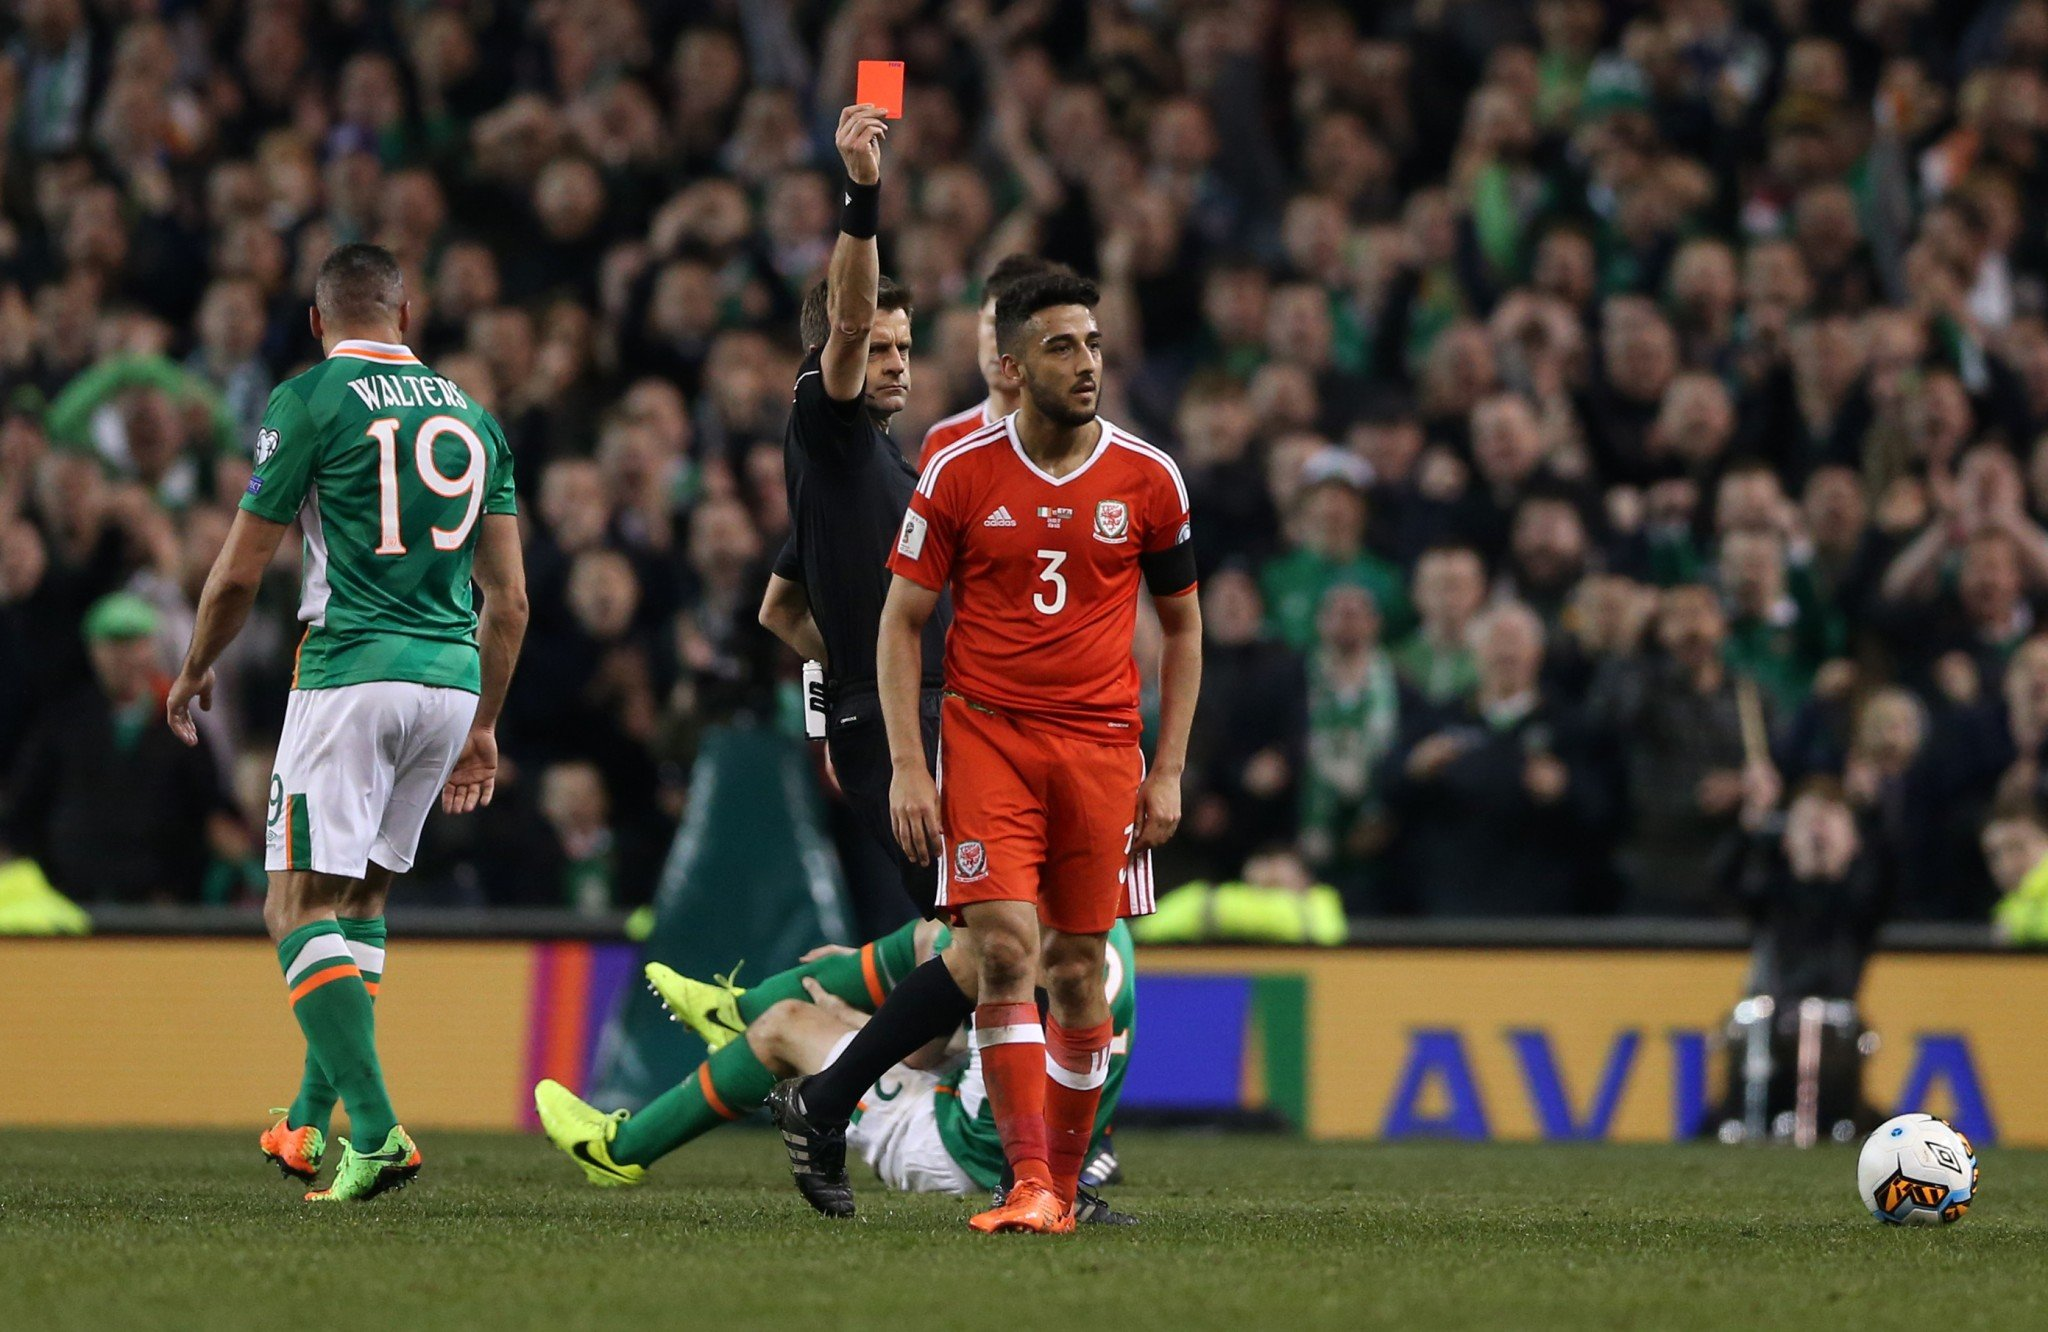 Neil Taylor is reported to have been inconsolable after his challenge broke Seamus Coleman's leg